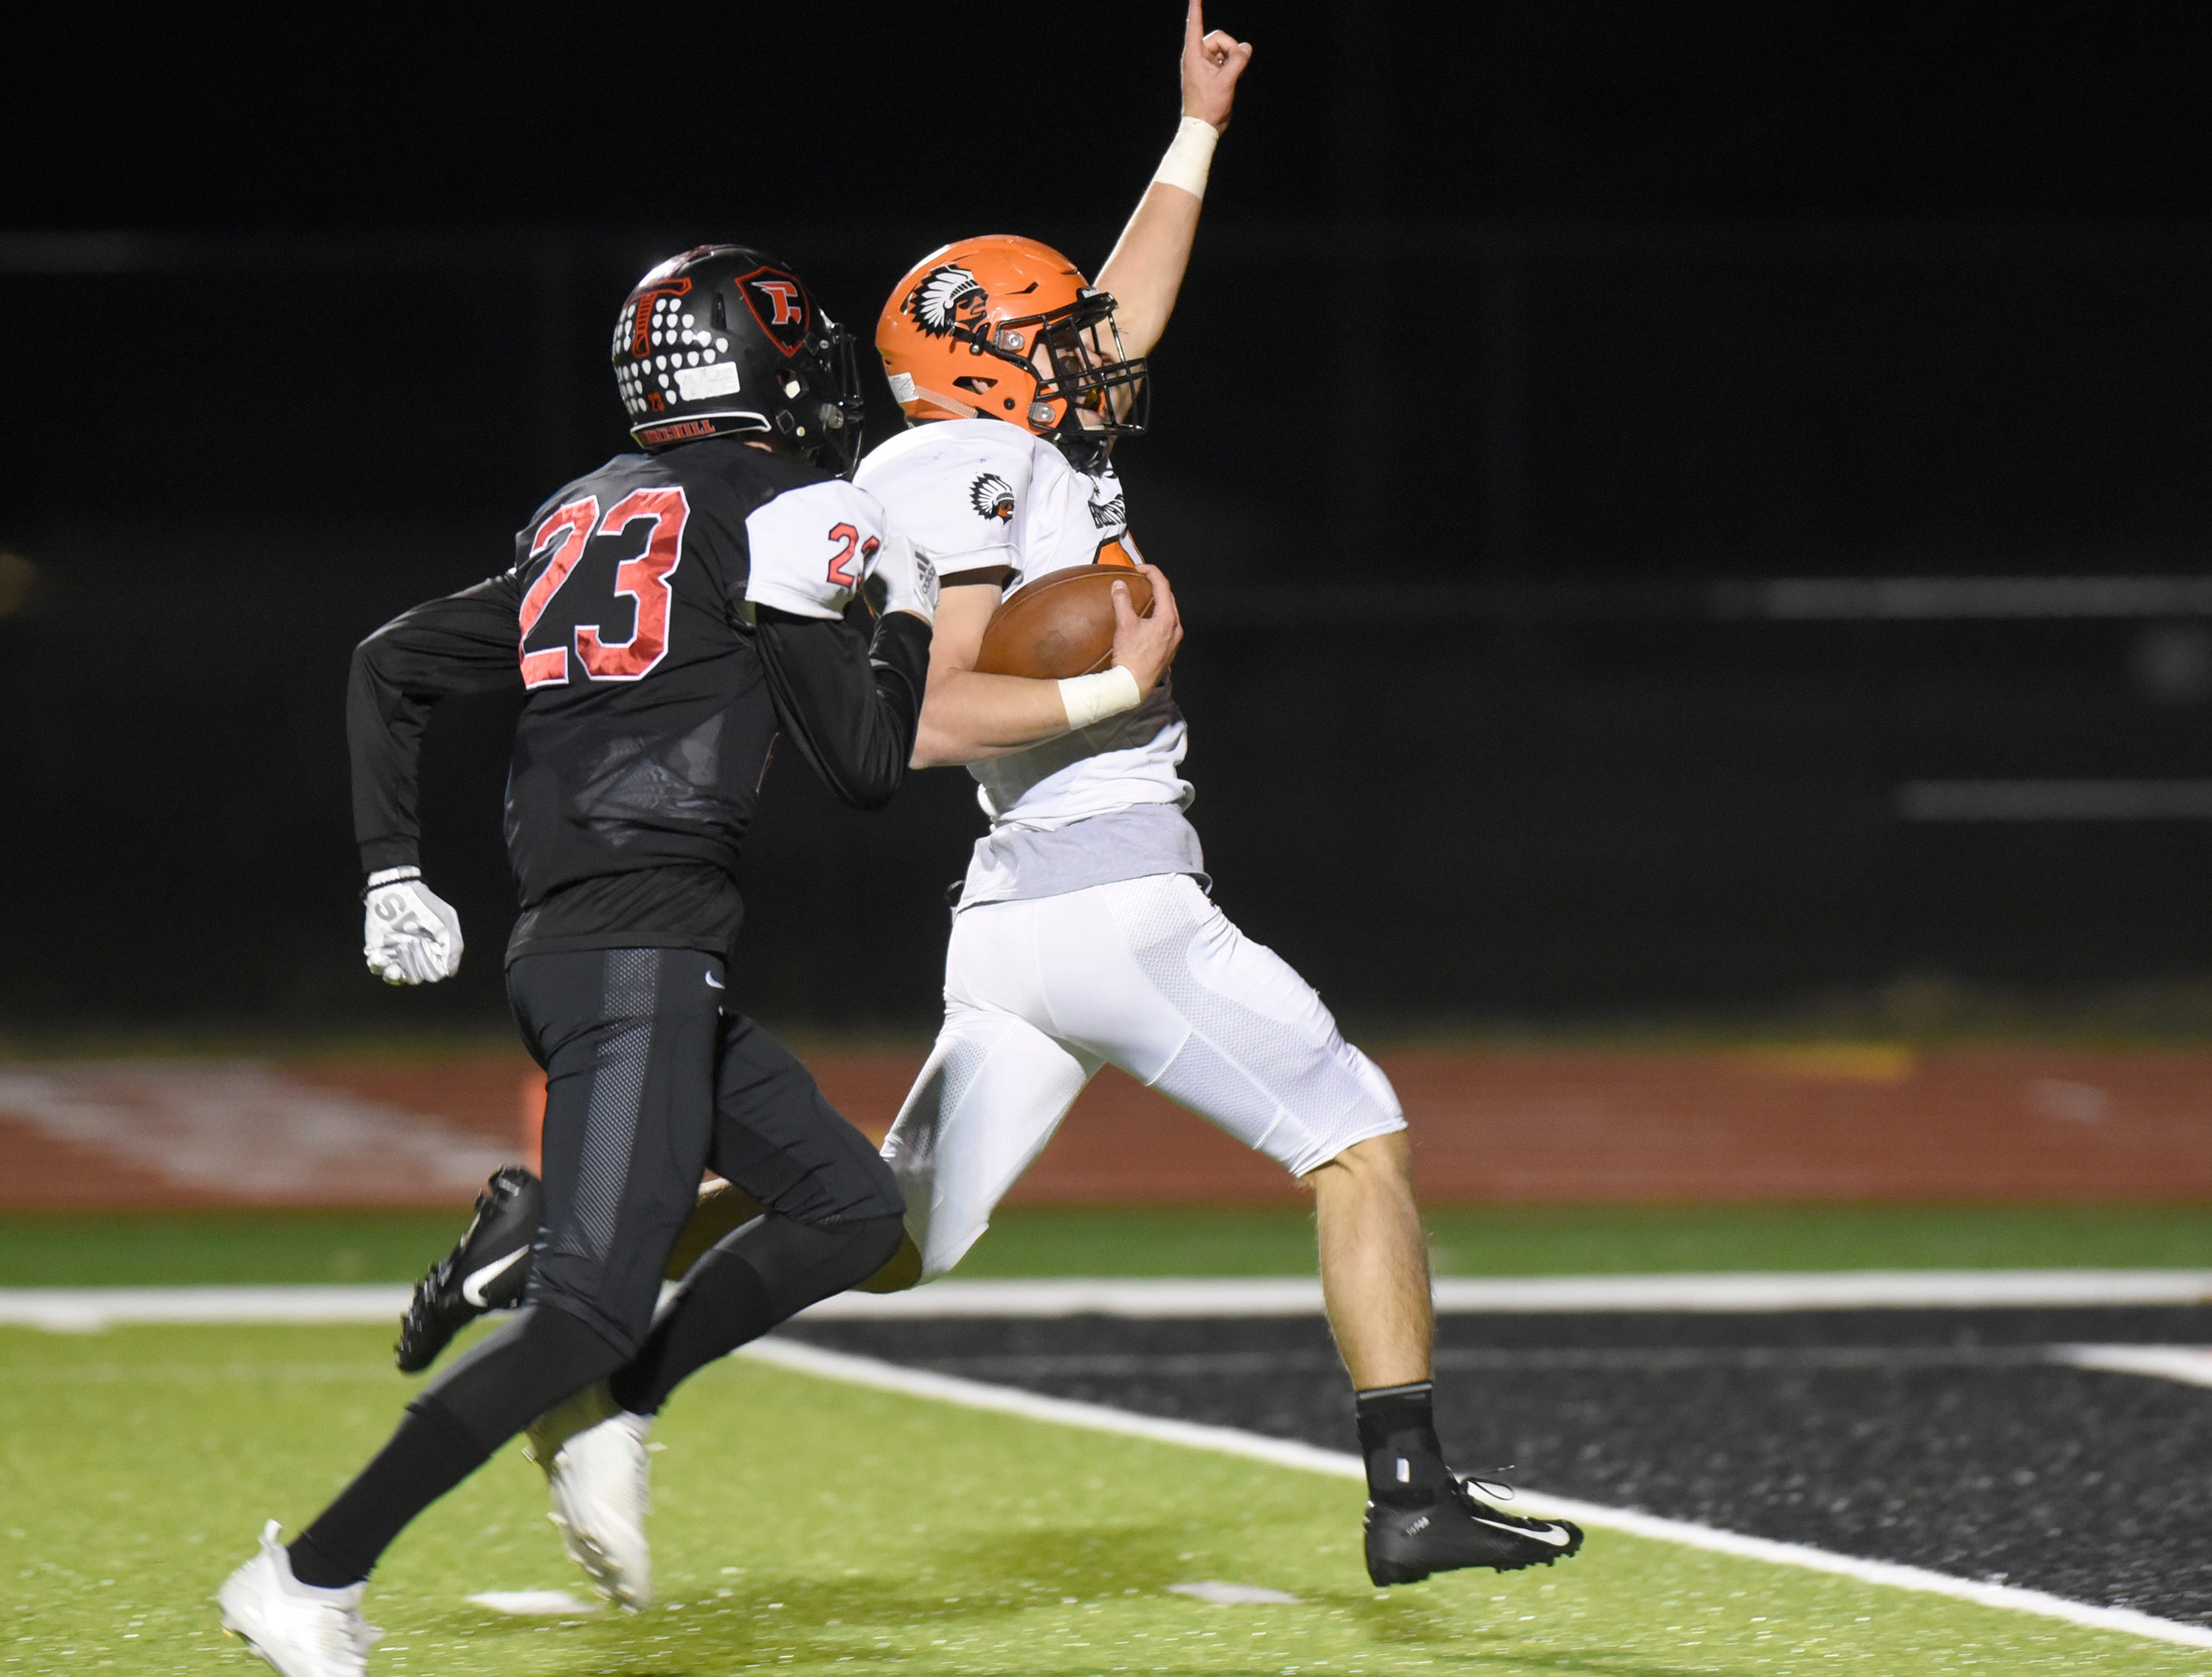 Brother Rice offense stymies Churchill in D2 pre-district opener